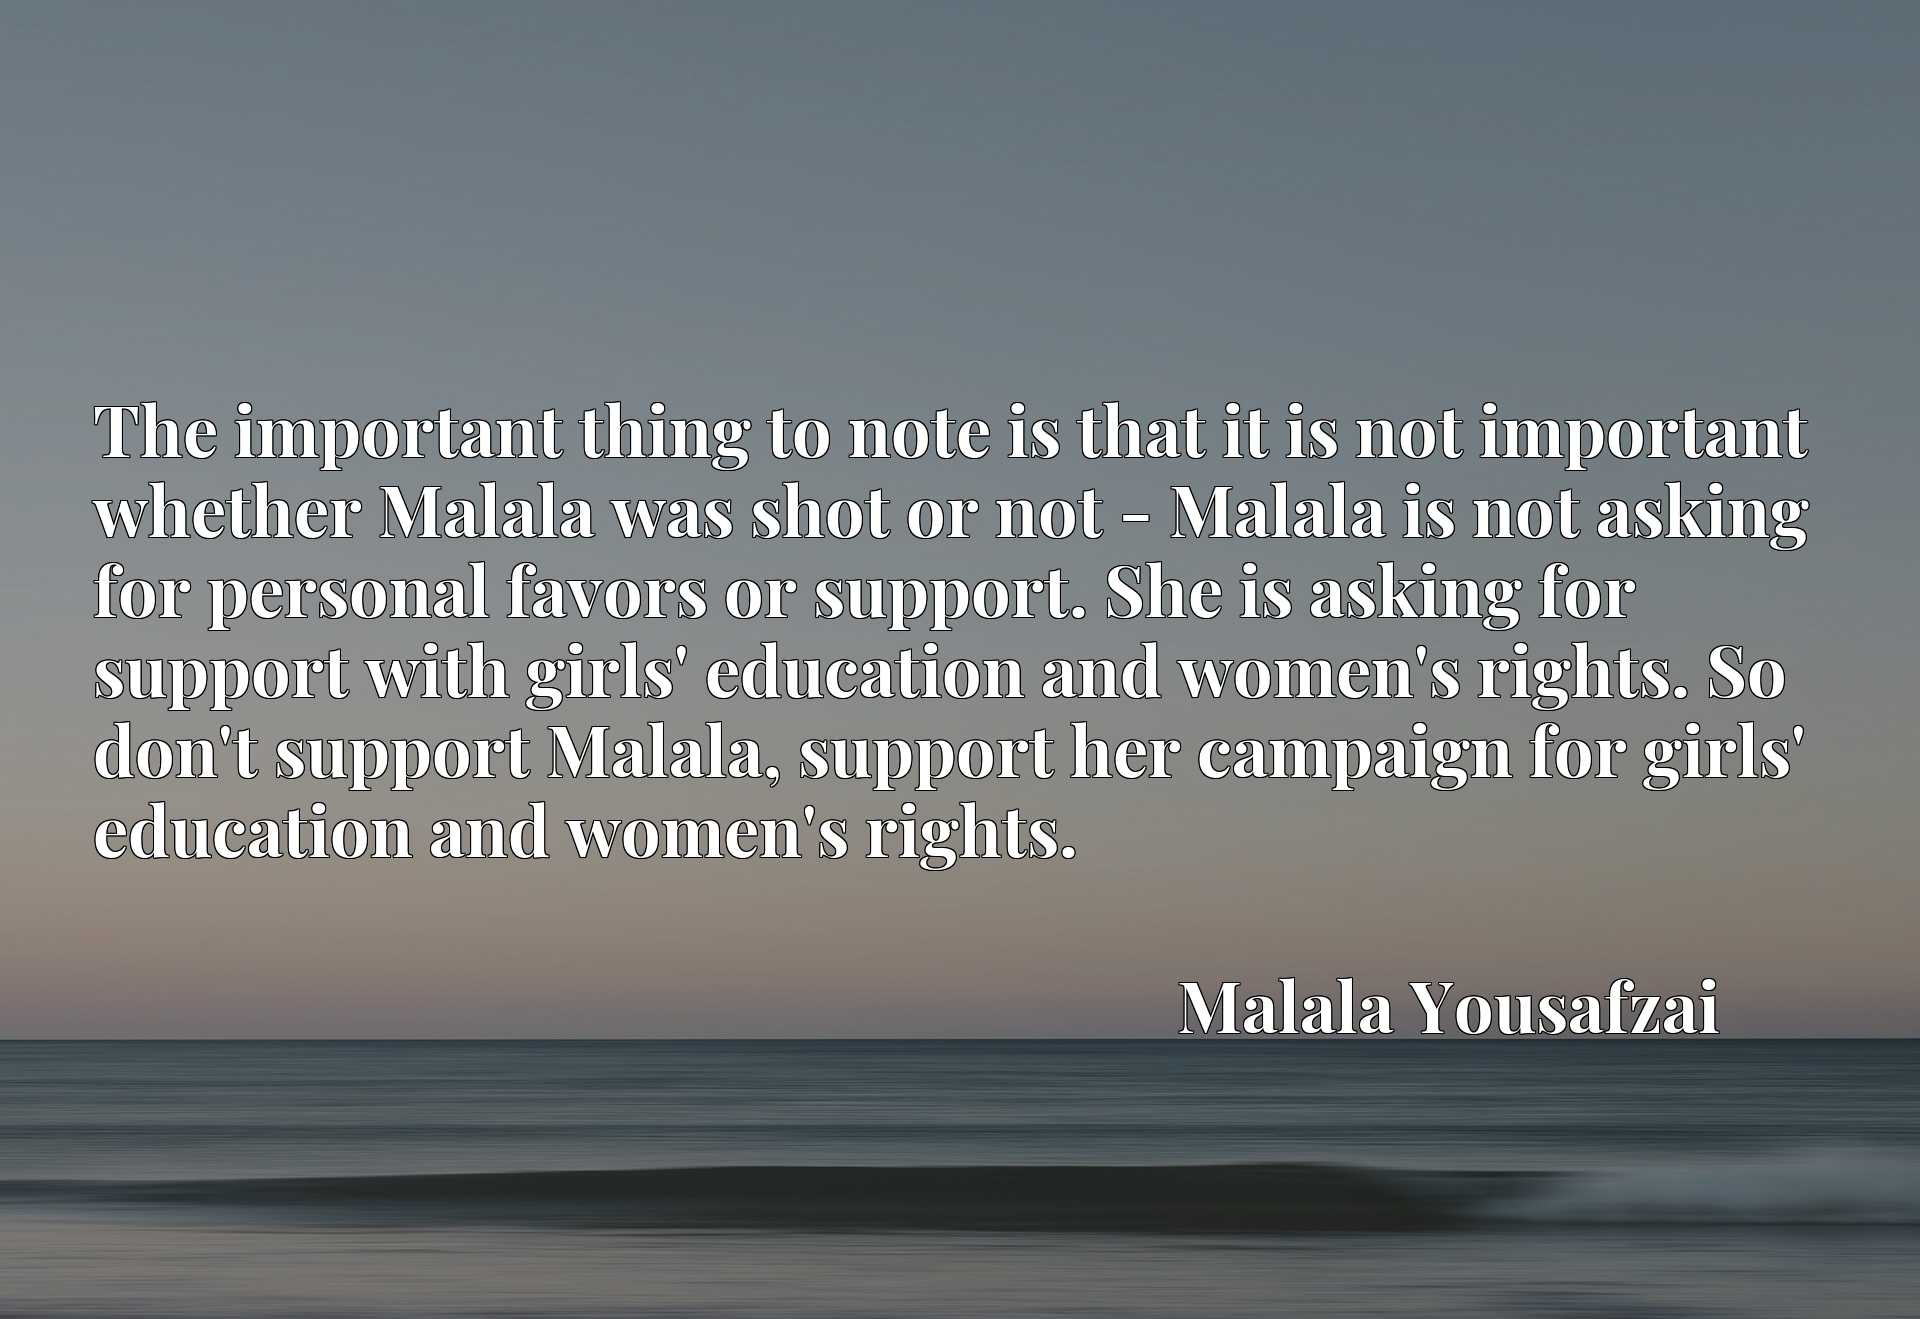 The important thing to note is that it is not important whether Malala was shot or not - Malala is not asking for personal favors or support. She is asking for support with girls' education and women's rights. So don't support Malala, support her campaign for girls' education and women's rights.